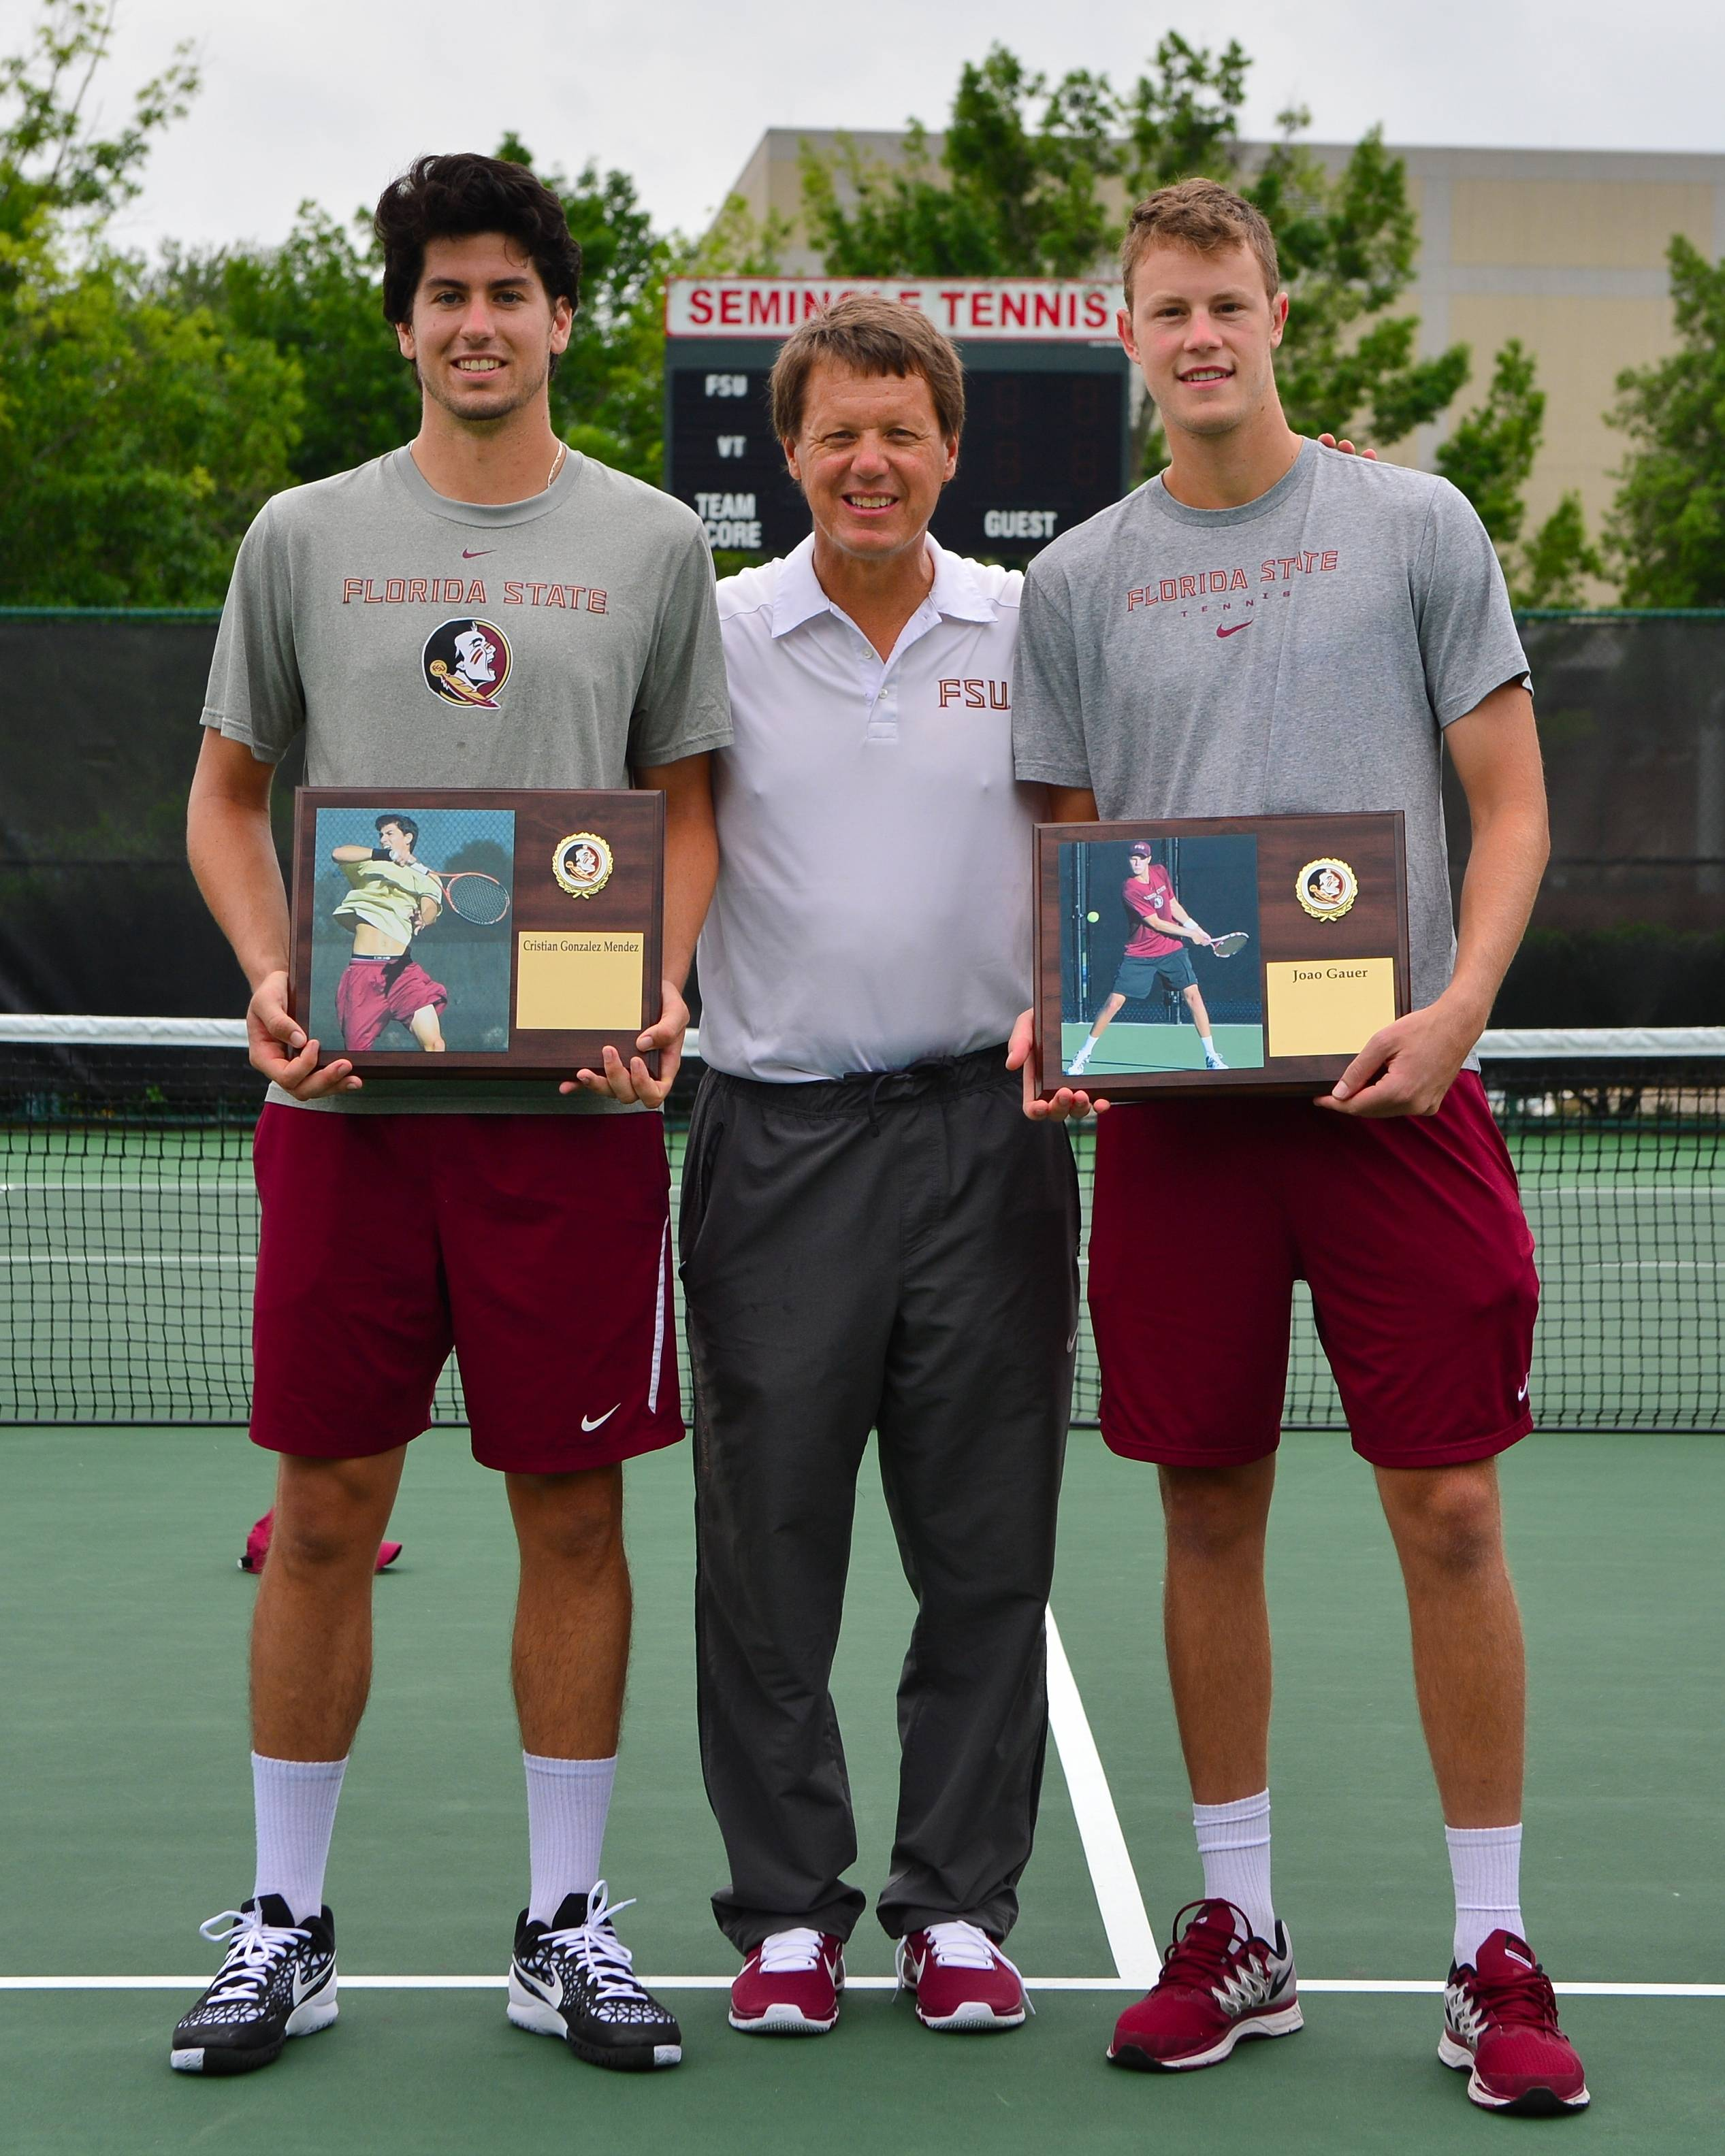 Cristian Gonzalez Mendez, head coach Dwayne Hultquist, and Joao Gauer